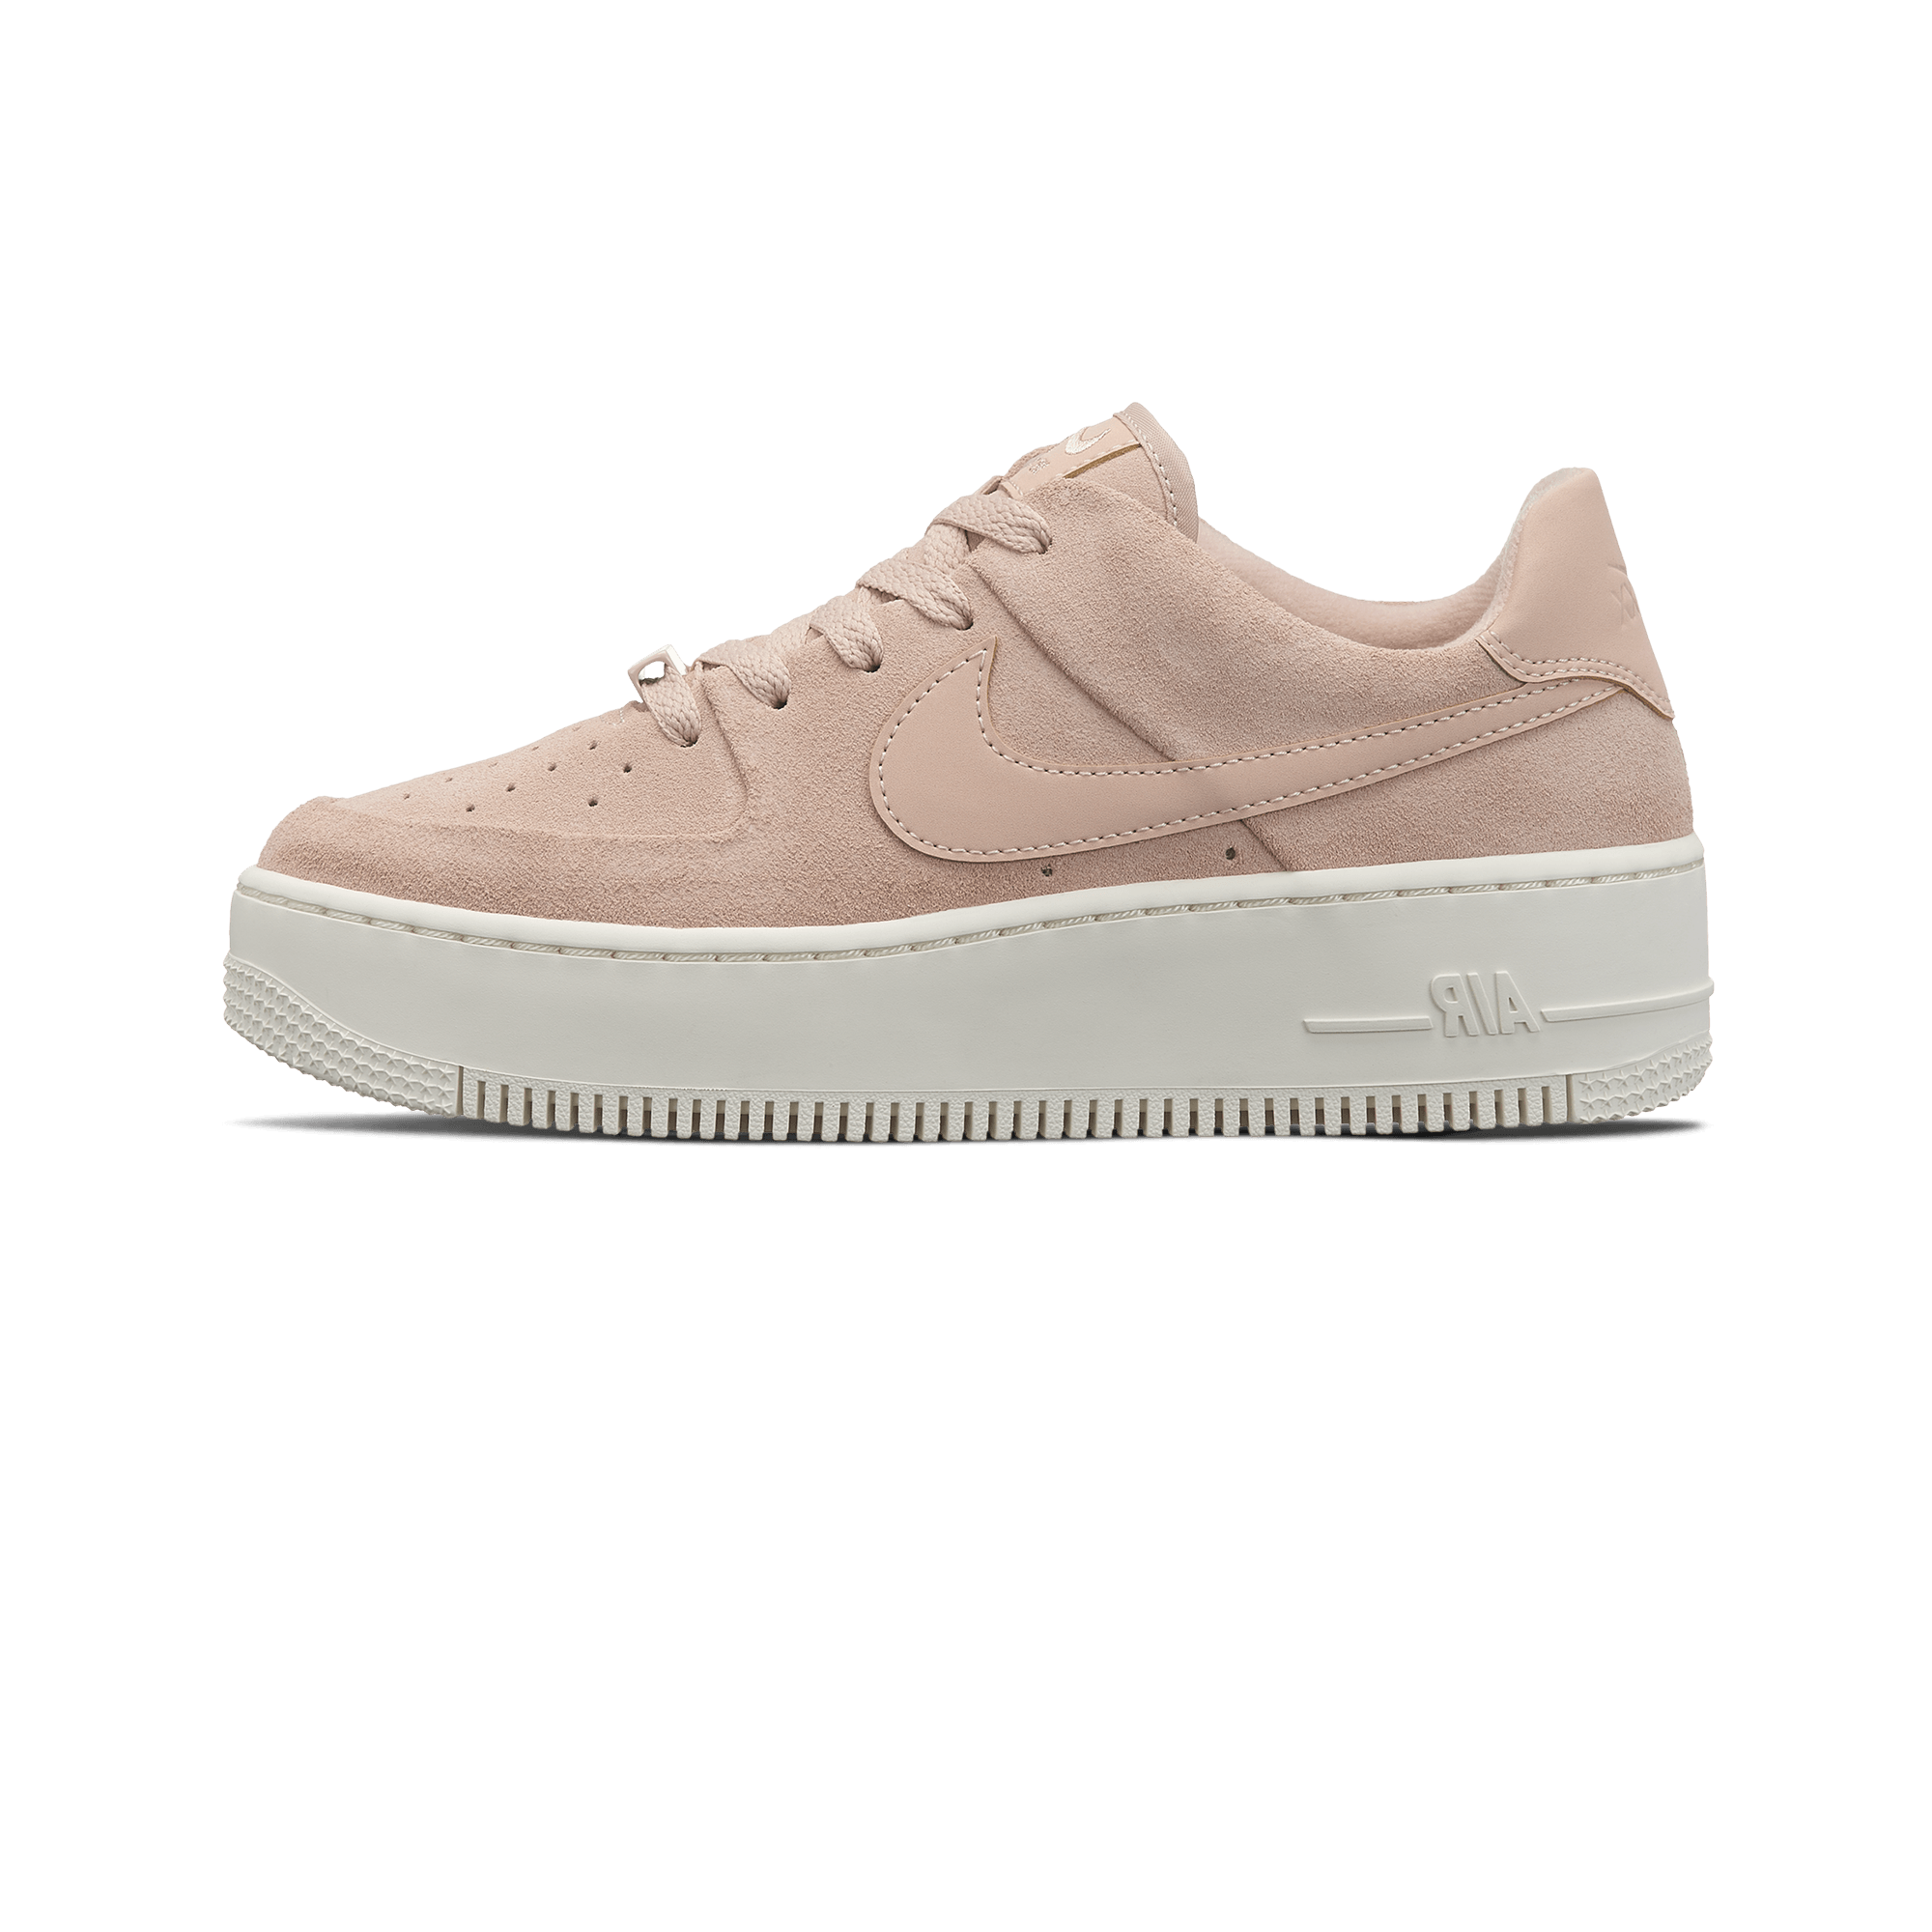 new arrival 72a1a 35c28 Nike Air Force 1 Sage Low particle beige / phantom - Woman |  Holypopstore.com